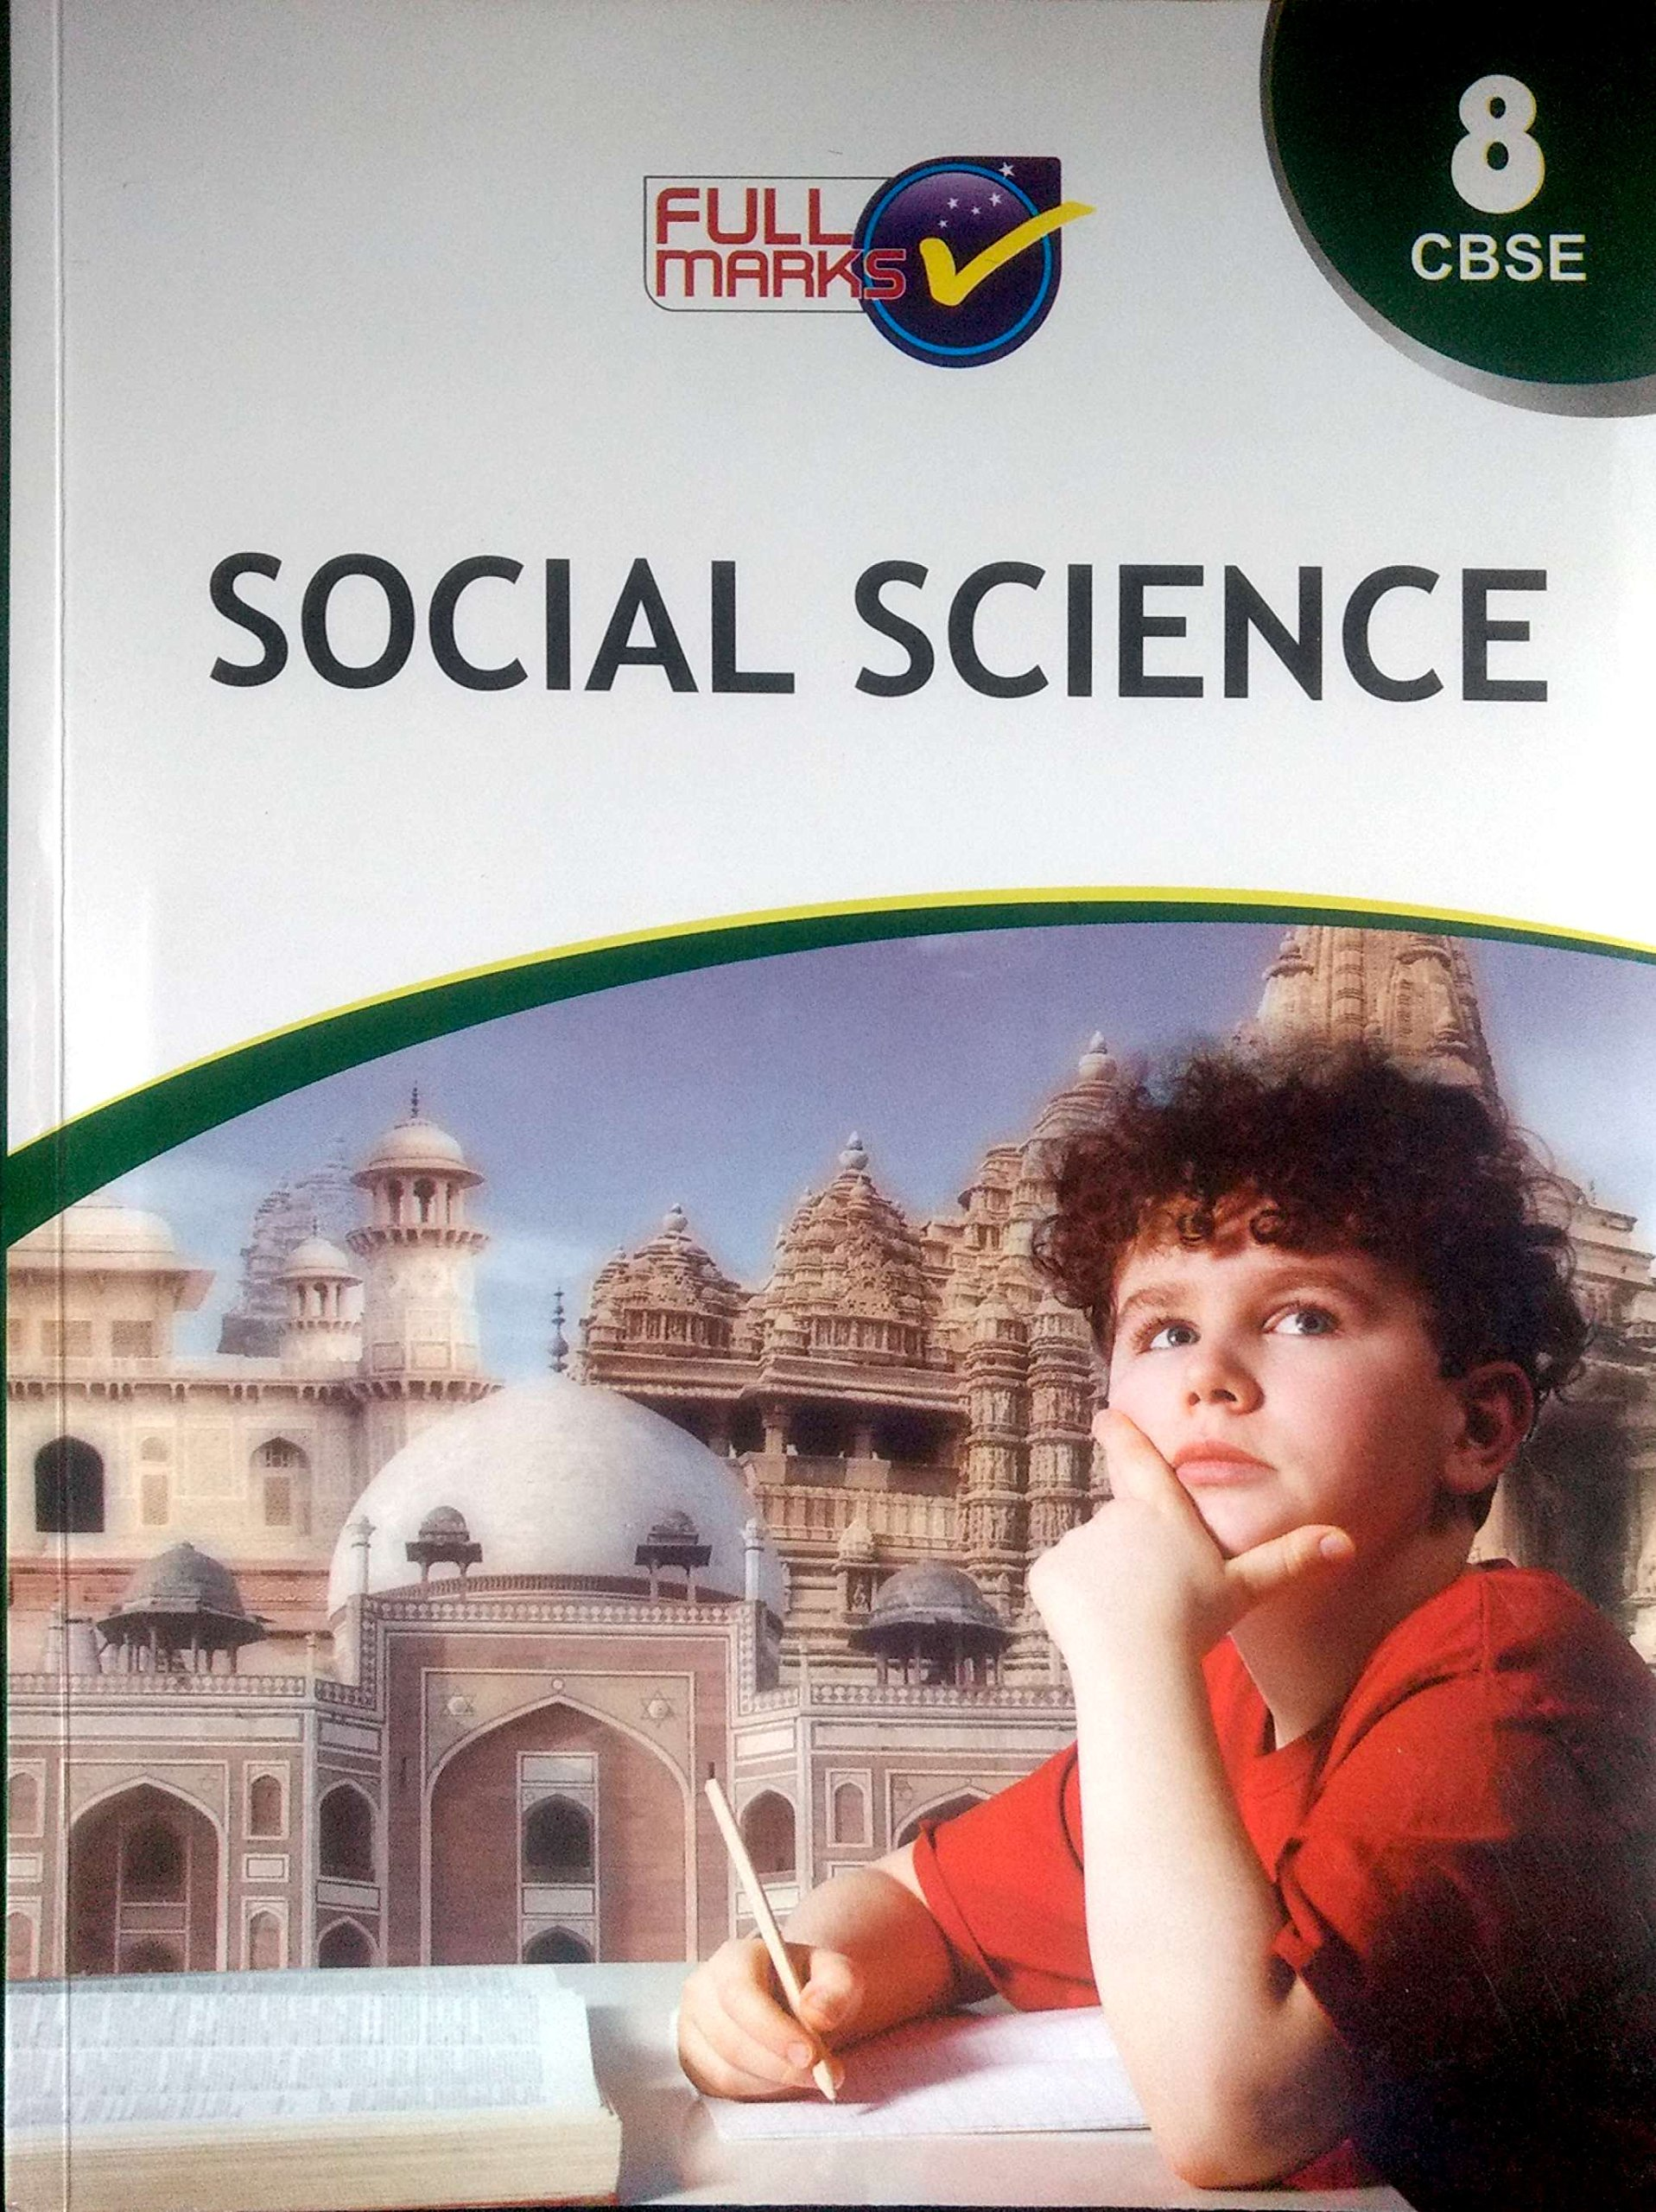 ncert social science solution class 8 cbse 2018 19 exam amazon in rh amazon in full marks guide class 8 dav science full marks guide class 8 science online